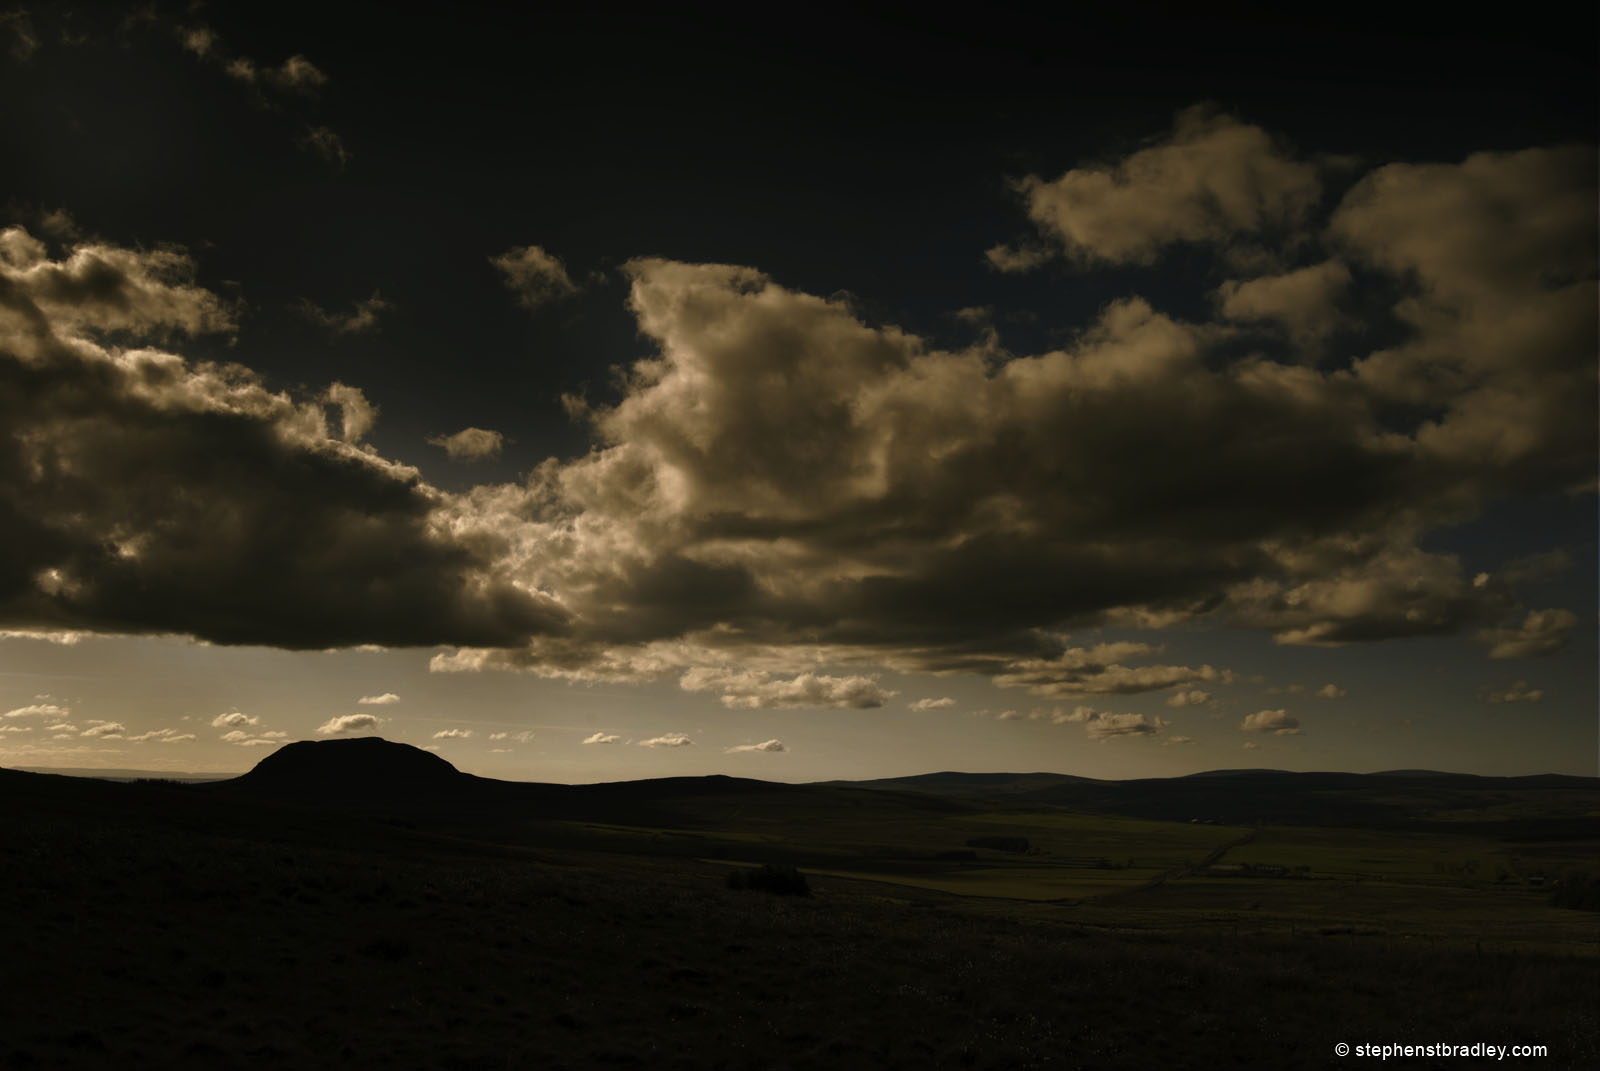 Commercial photographer Atlanta, landscape photograph of sunset at Slemish mountain, Northern Ireland - image 1934 by Stephen Bradley photographer.